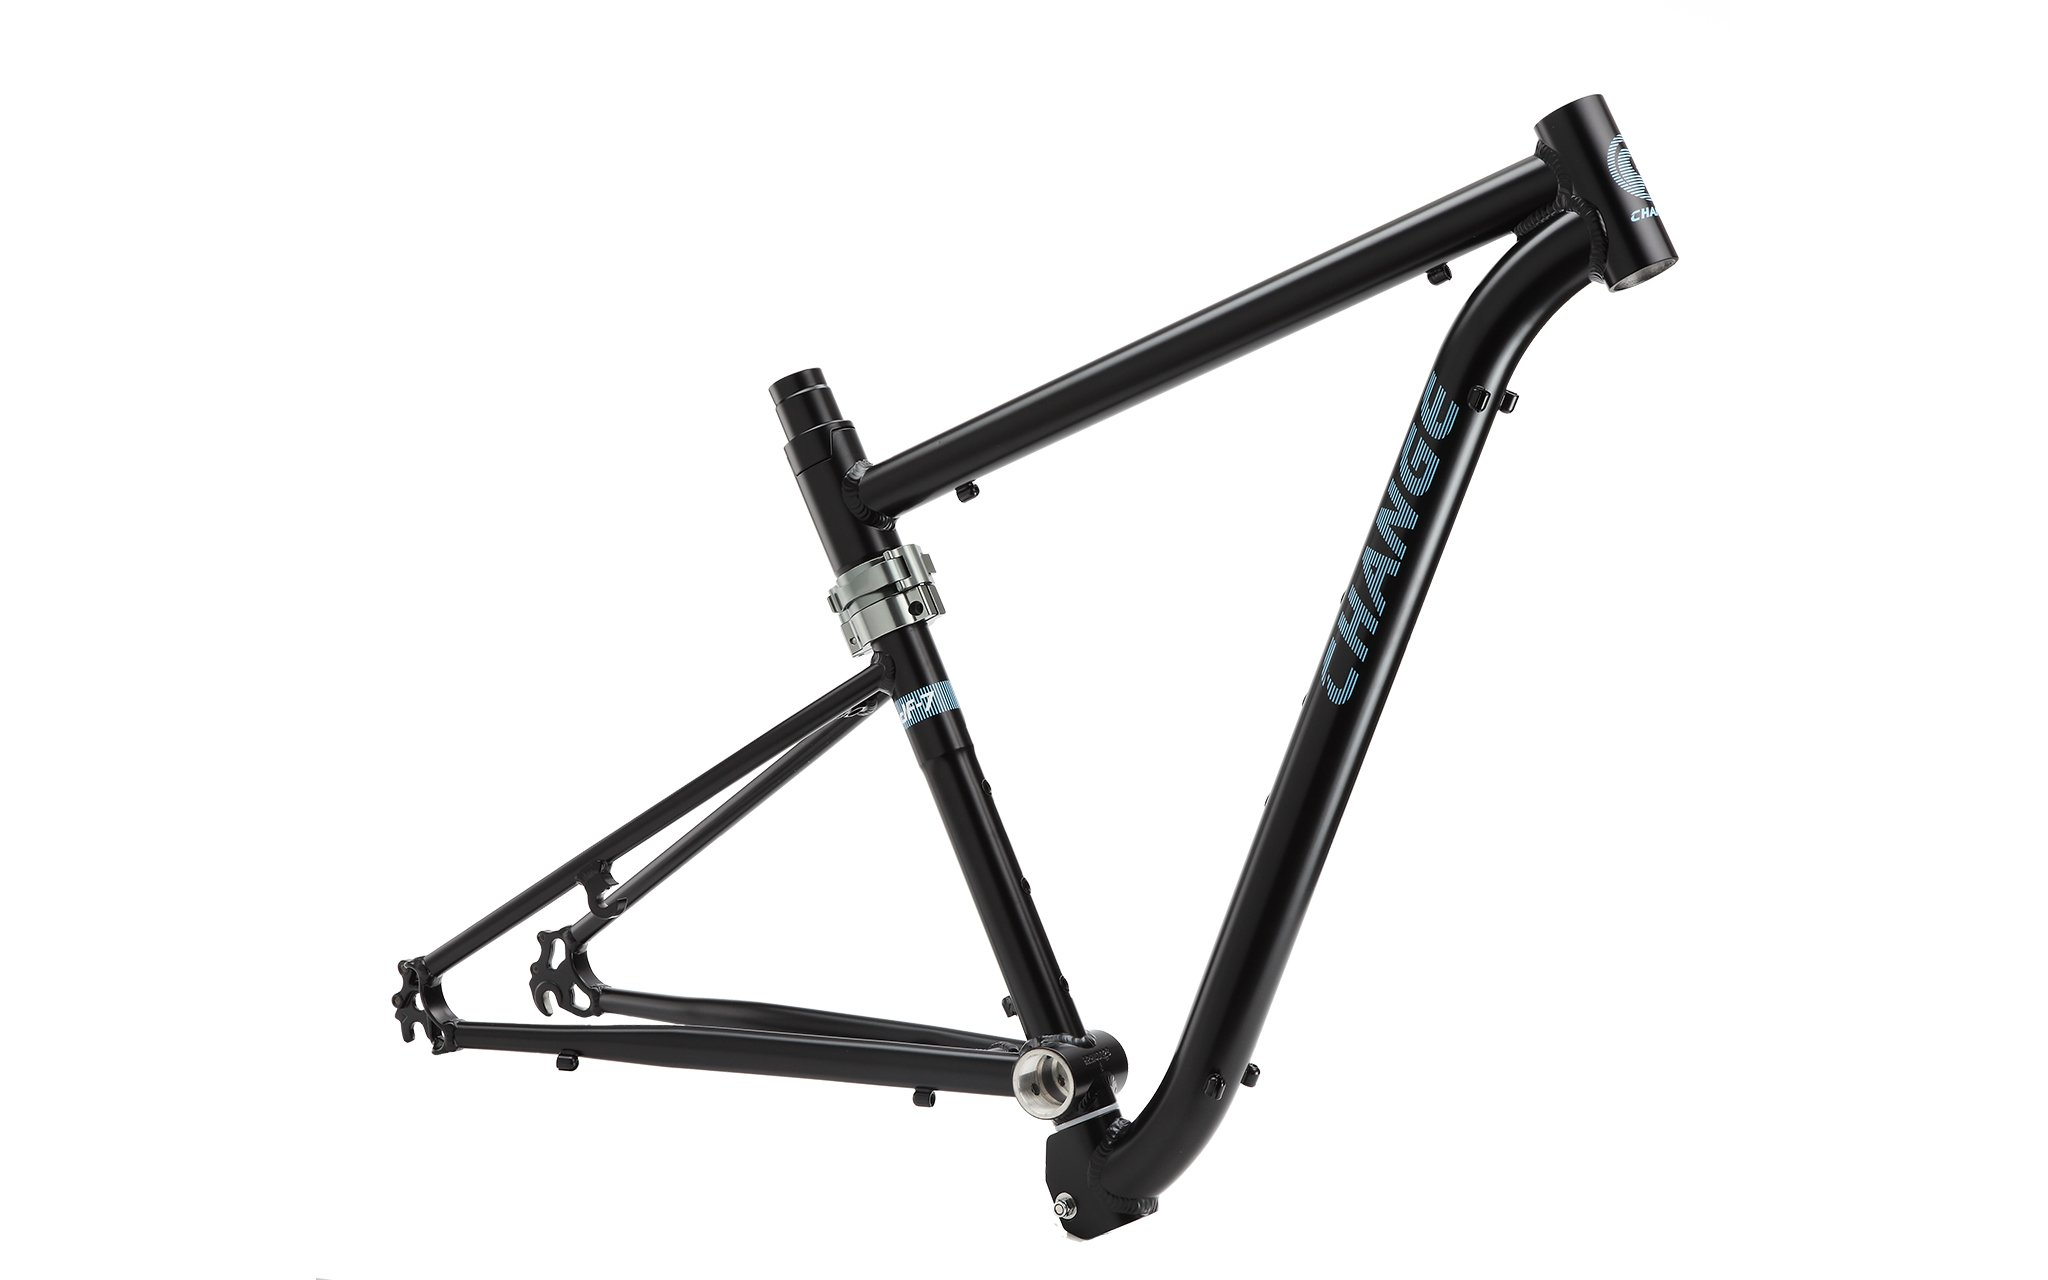 CHANGE 733 Frame Set | Folding Bicycle Frame for Road Bikes